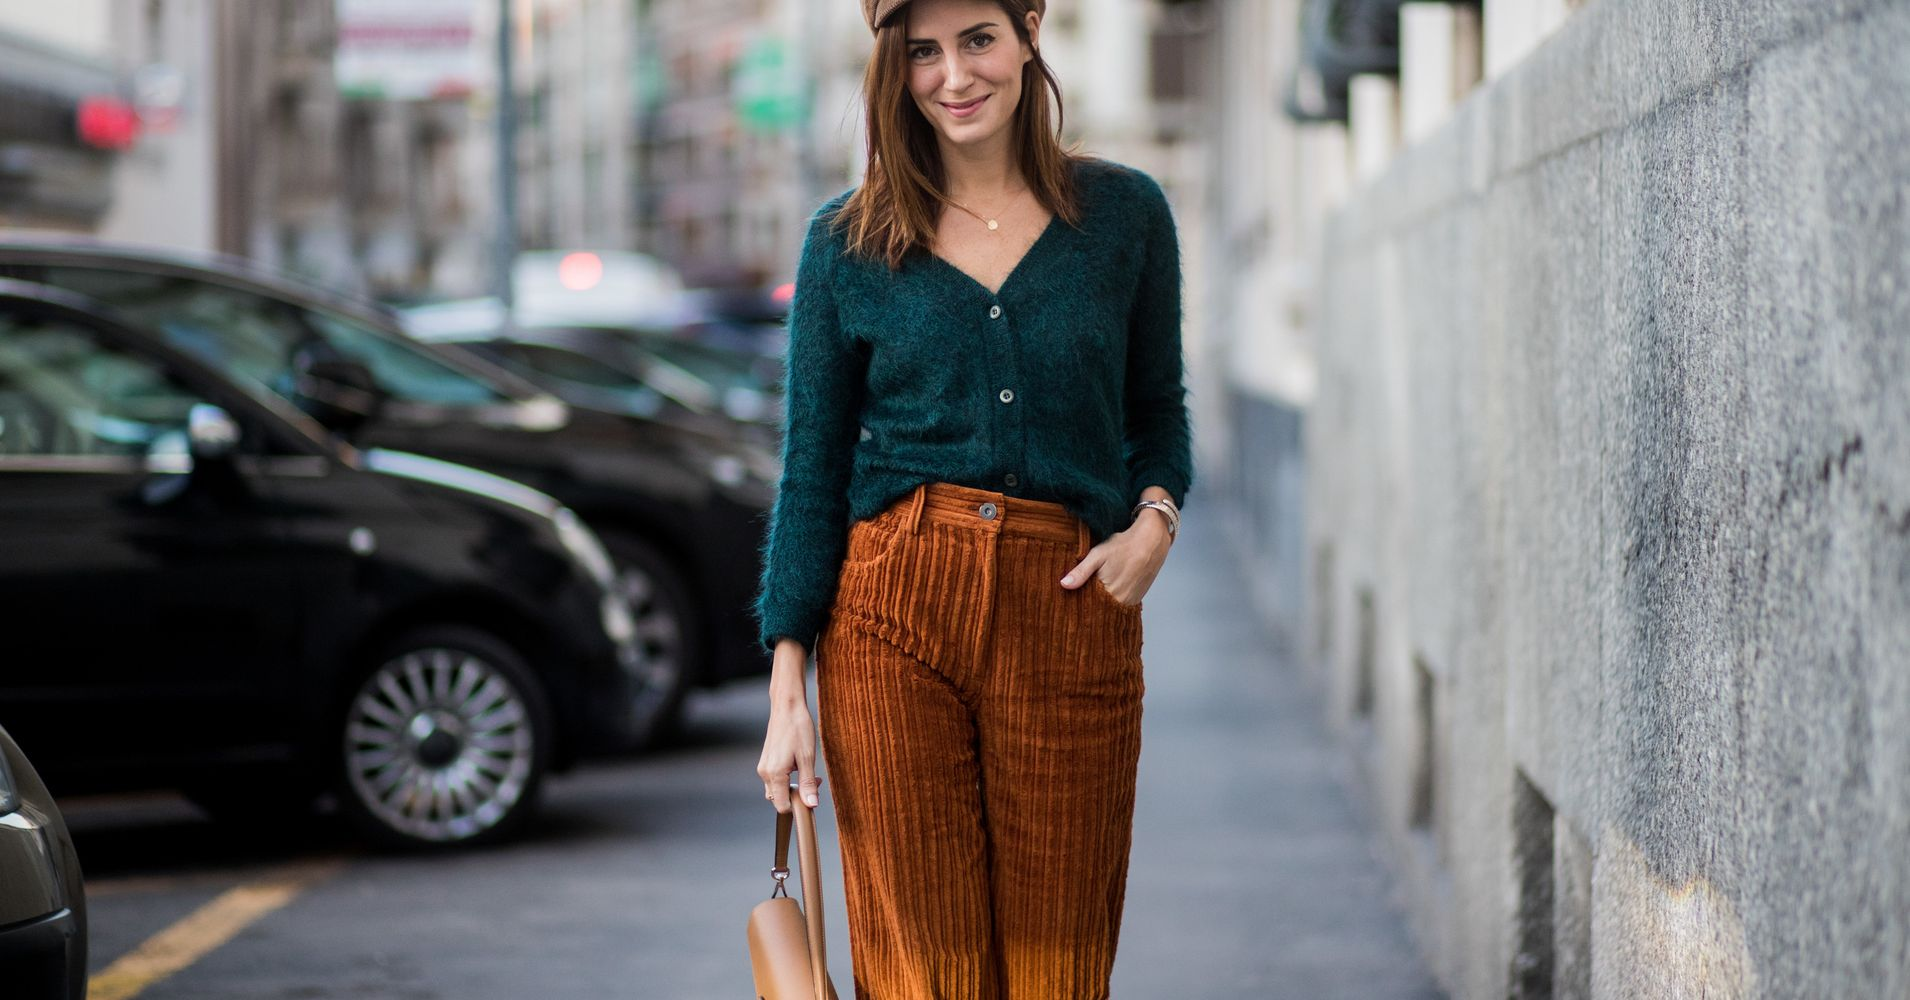 fddd45f39085c Corduroy Pants Are The 2018 Trend That's Cozy And Affordable | HuffPost Life